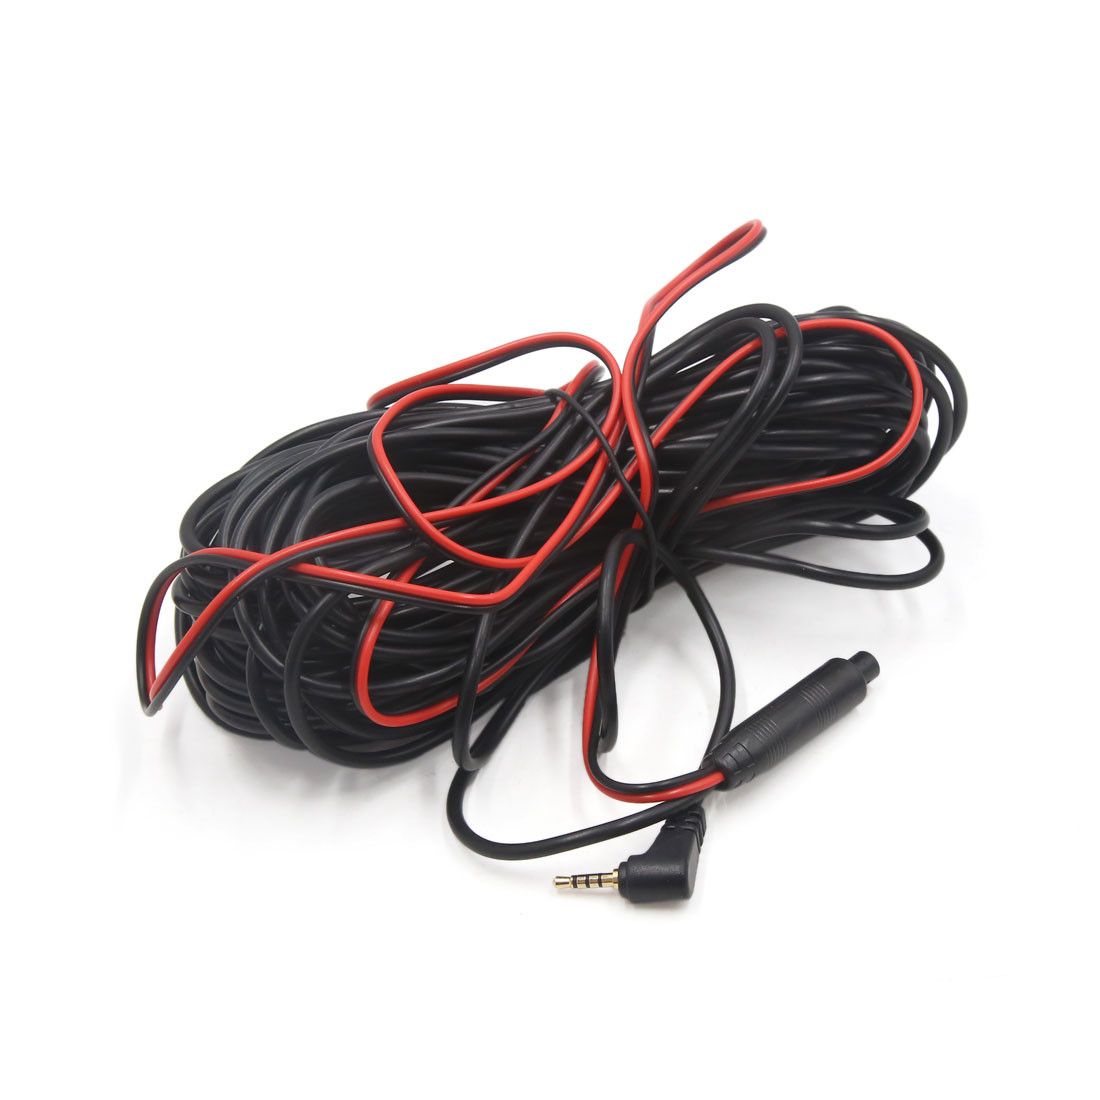 14.5m 2.5mm 4 Pin Rear View Backup Camera Recorder Extension Cable Wire for Car